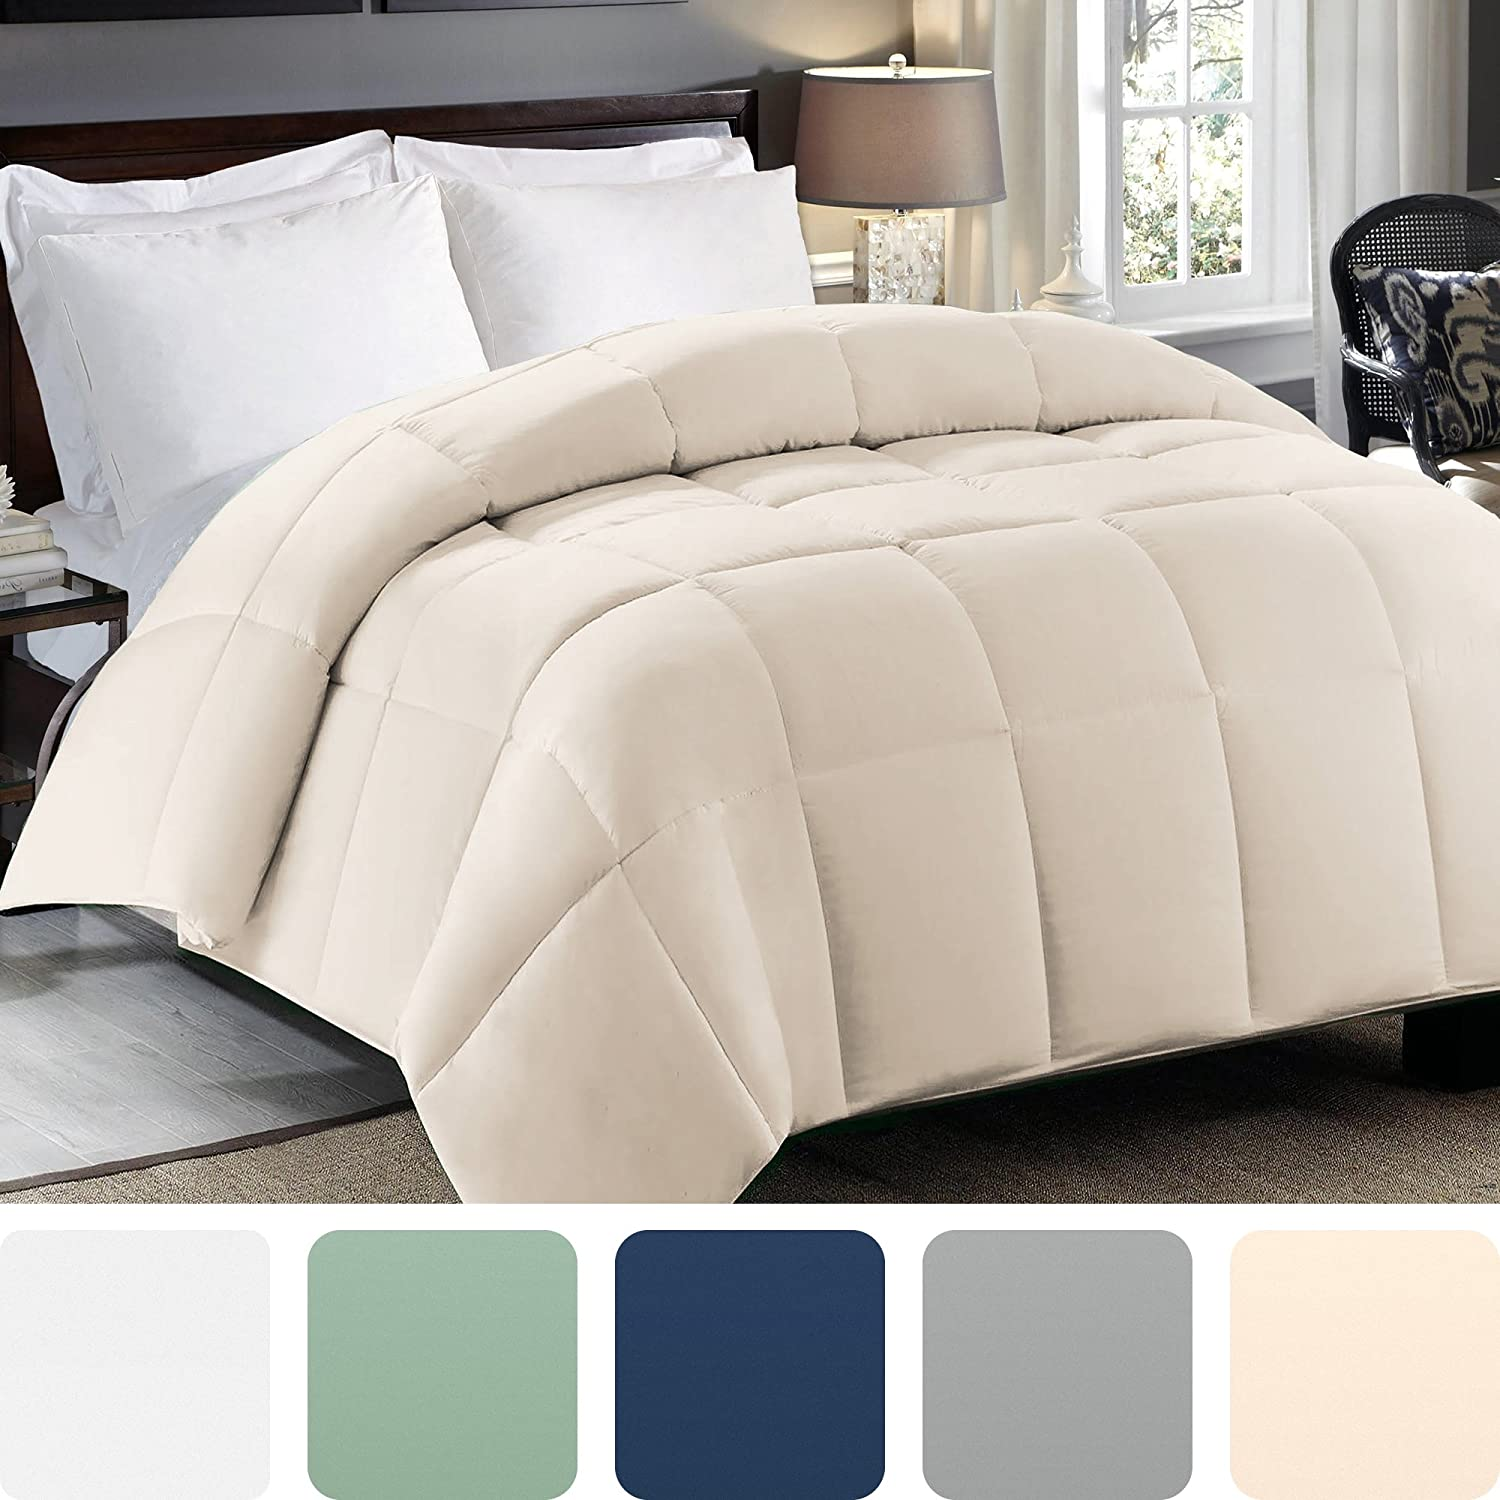 Amazon Com Cosy House Collection Premium Down Alternative Comforter Ivory All Season Hypoallergenic Bedding Lightweight And Machine Washable Duvet Insert Twin Twin Xl Kitchen Dining